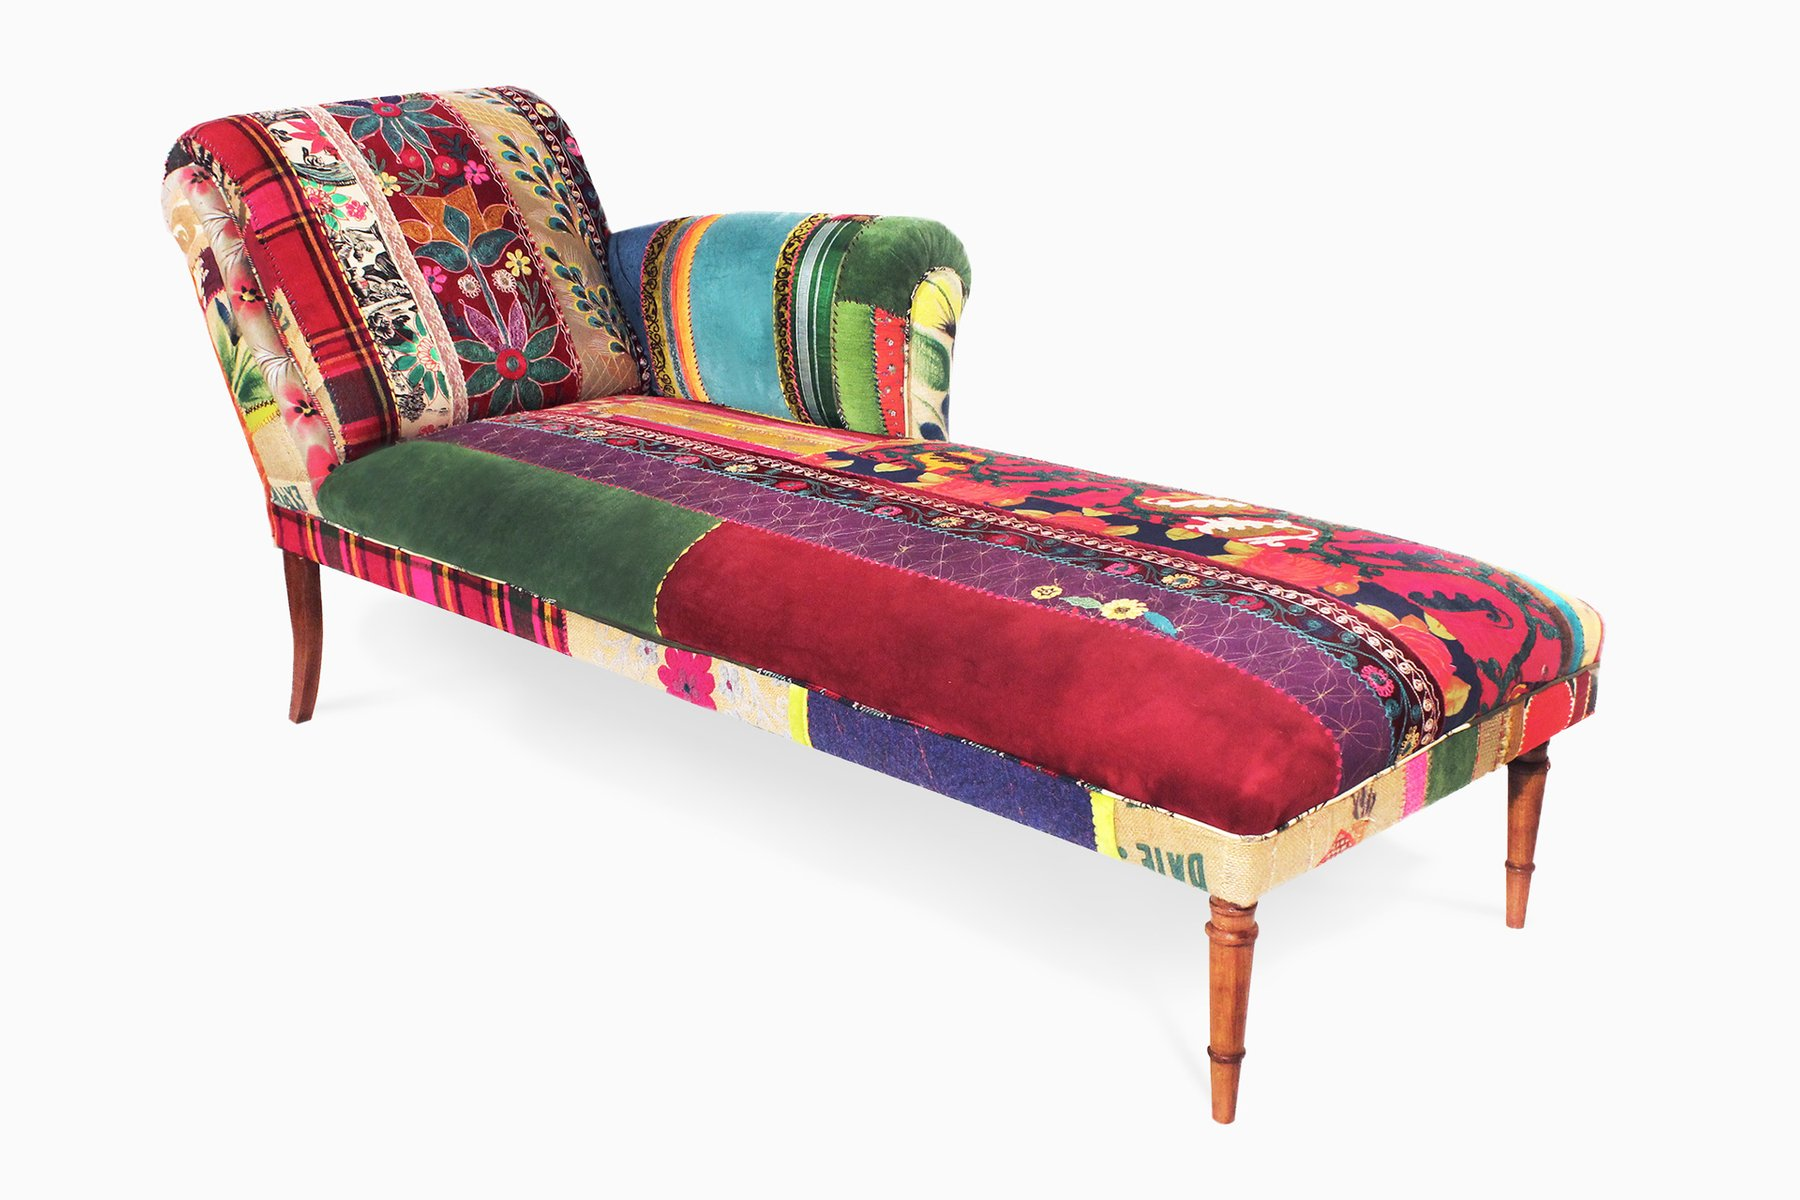 chaise patchwork excellent chair patchwork style bohemian fabric blue grey beige with chaise. Black Bedroom Furniture Sets. Home Design Ideas